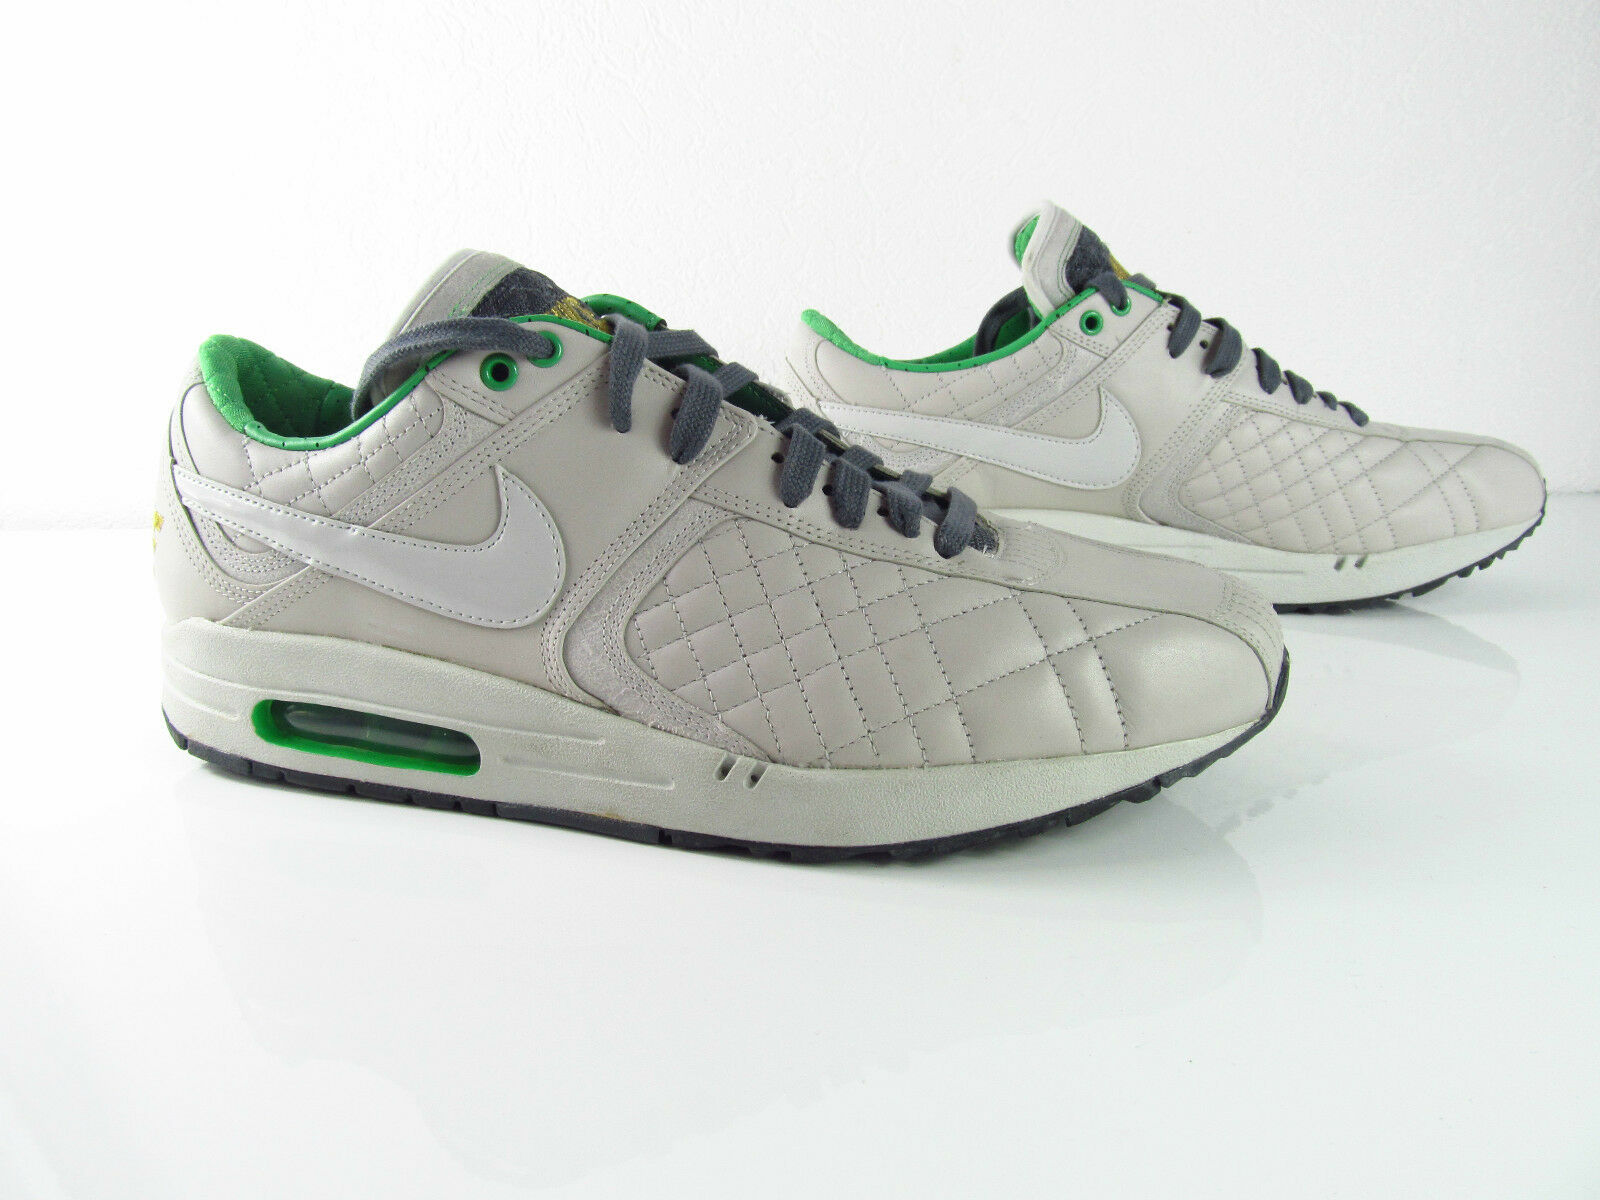 Nike Air Max Nike Nike Air Max 90 25TH ICE Damen Verkaufen